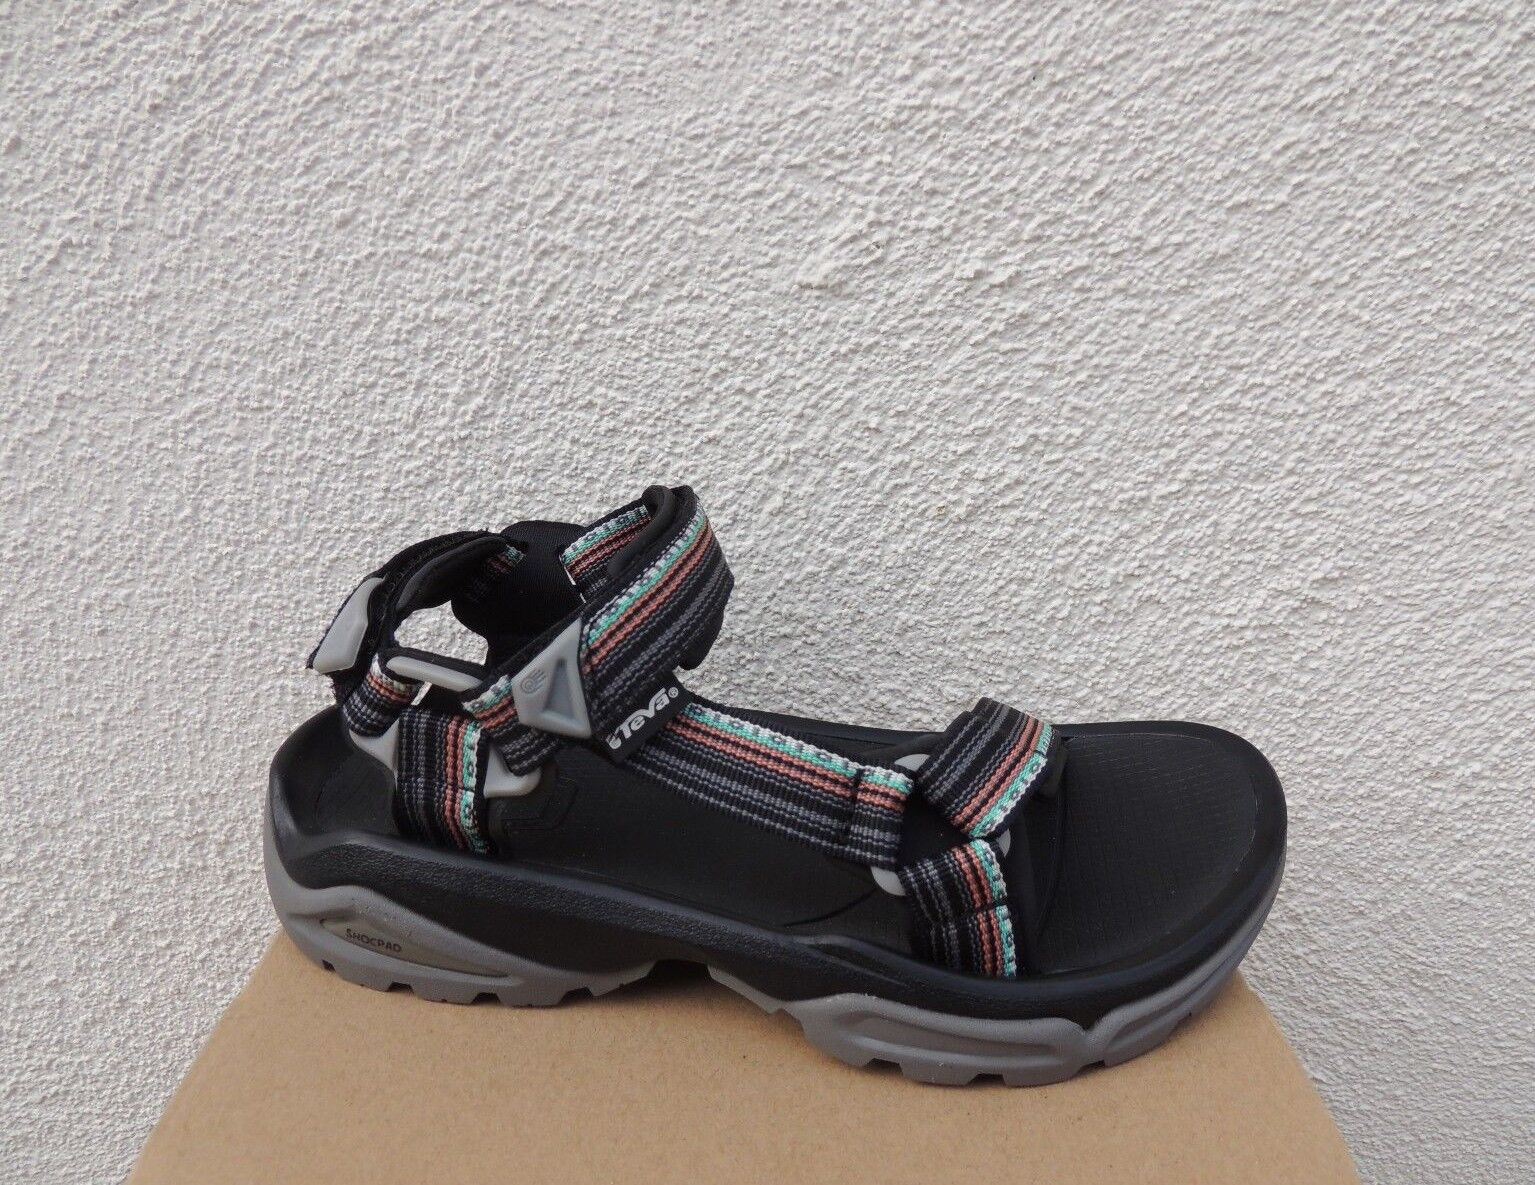 TEVA TERRA FI 4 LA LA LA MANTA BLACK SPORT  HIKING SANDALS, WOMEN US 10  EUR 41 NEW 948938